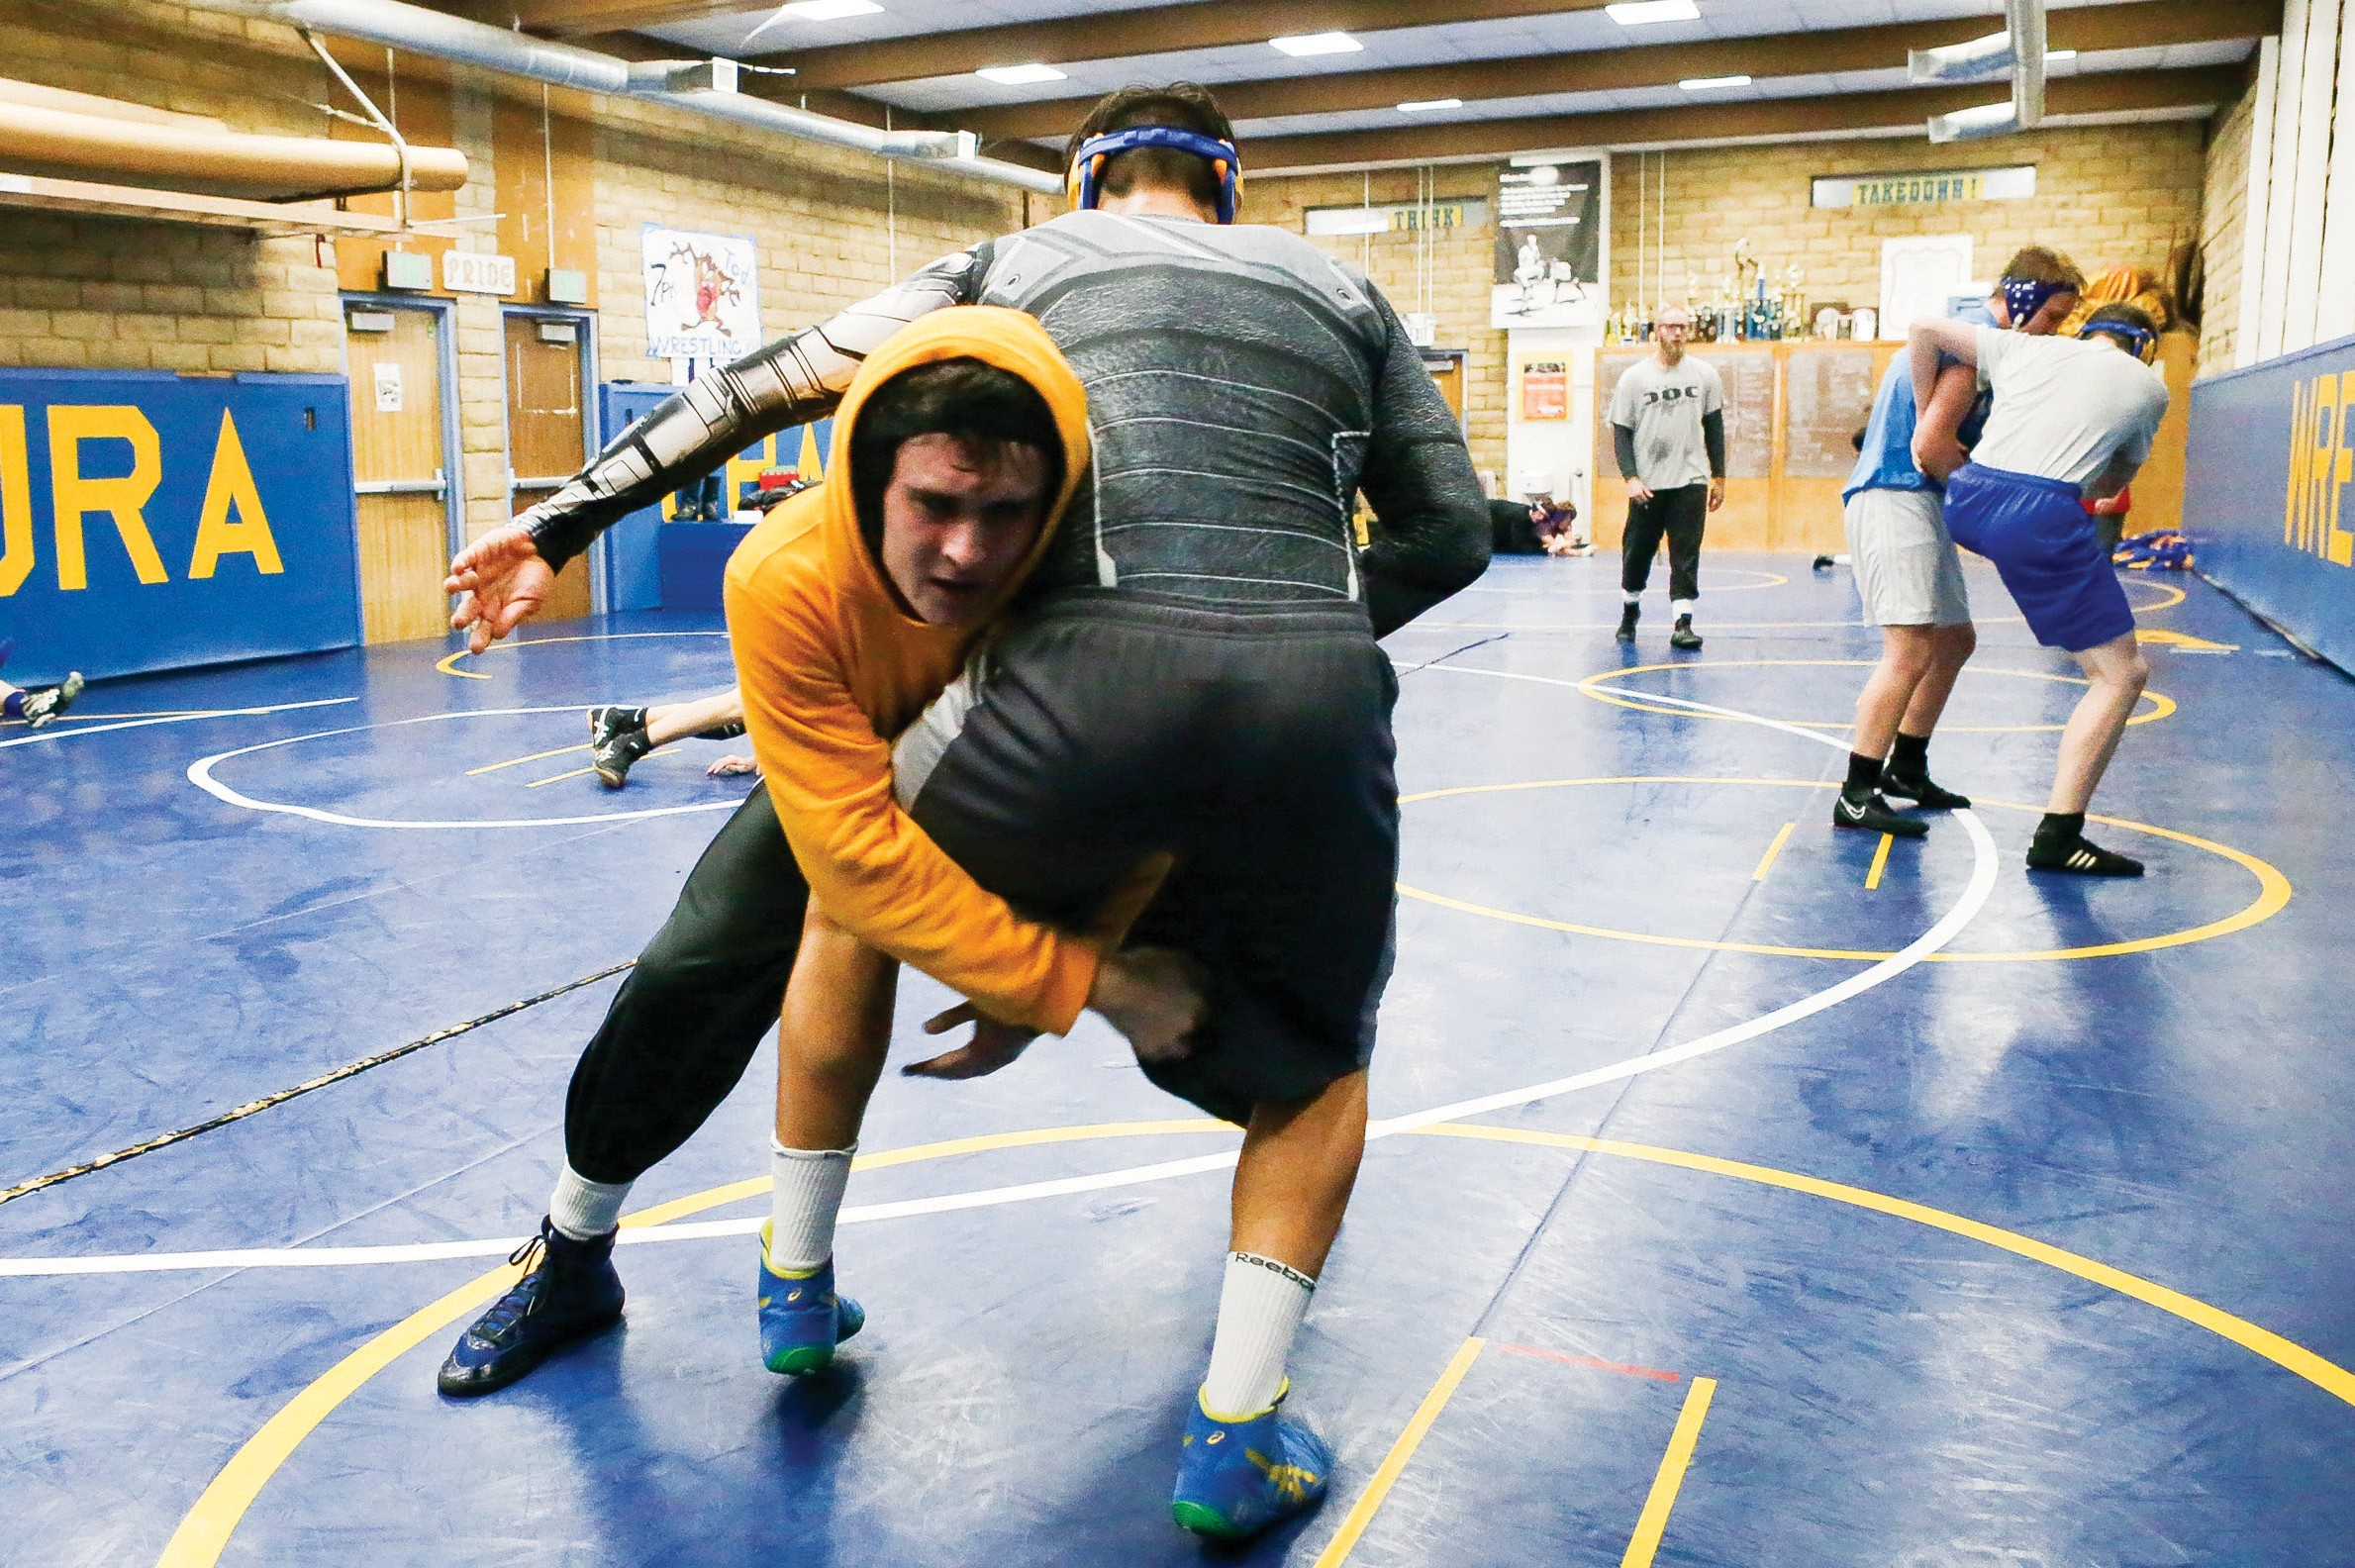 SYSTEM OF A DOWN—Agoura High senior wrestler Brandon Sherwood, left, grapples with teammate Taylor Lazarus-Juareguy at practice earlier this week. Sherwood won a Marmonte League title last year. Photos by BOBBY CURTIS/Acorn Newspapers